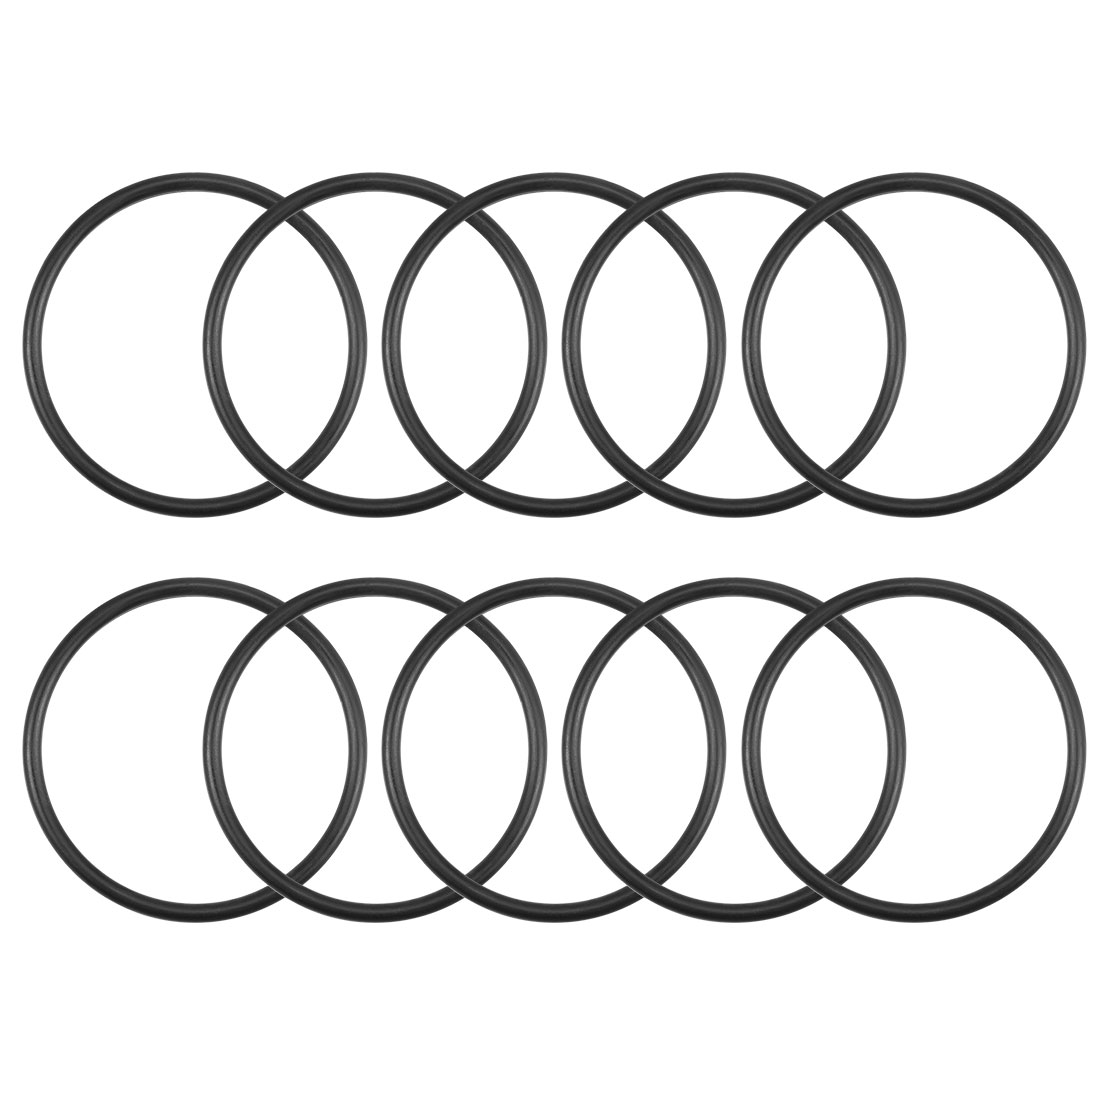 O-Rings Nitrile Rubber 27mm x 30.6mm x 1.8mm Round Seal Gasket 10Pcs